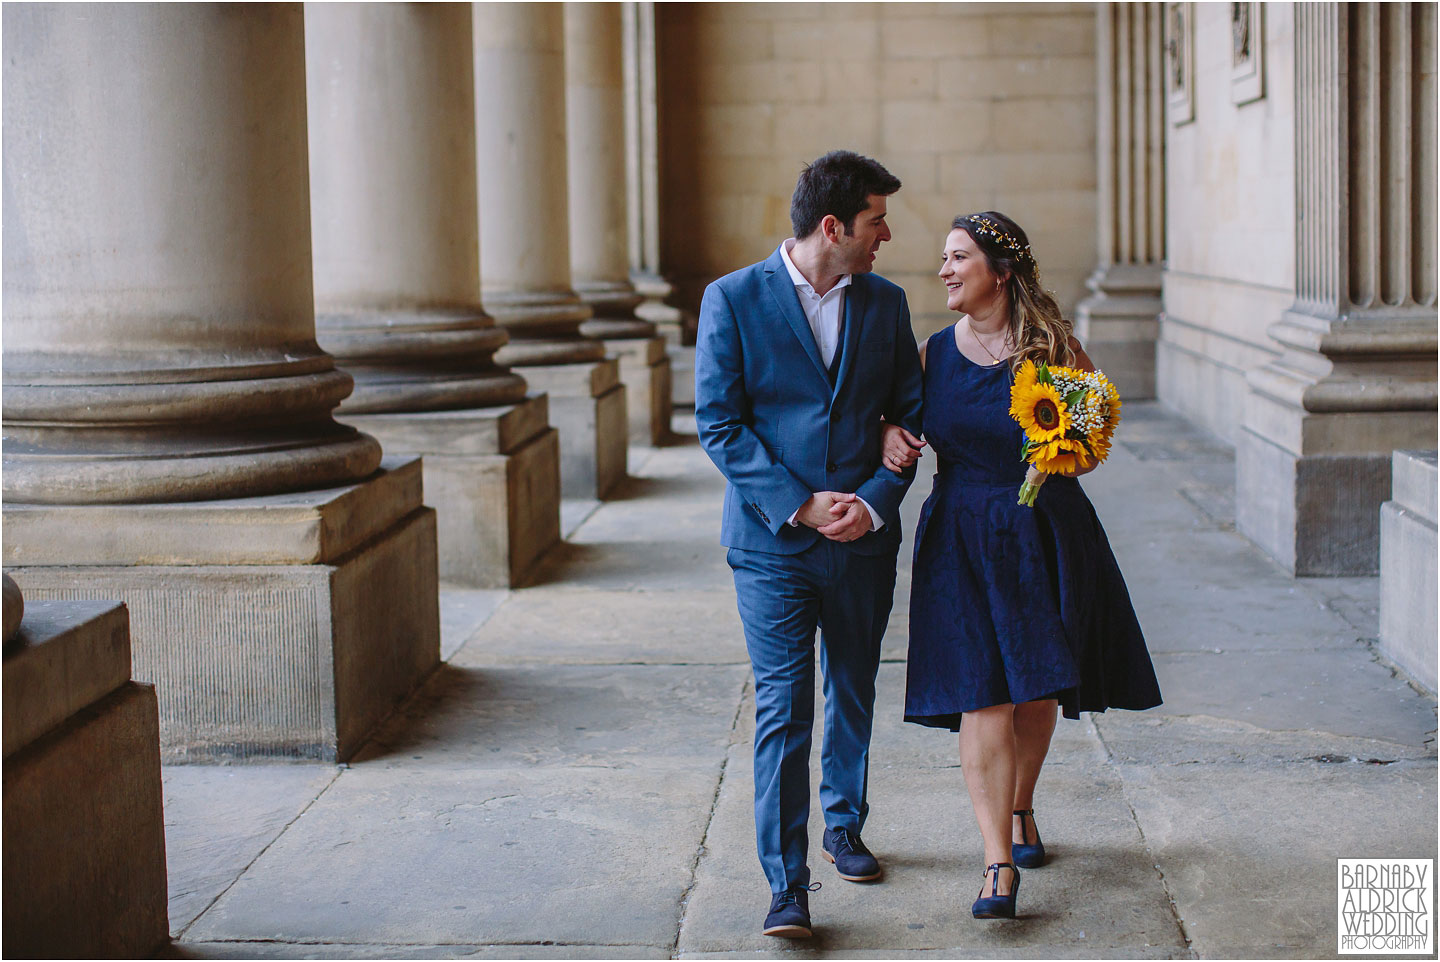 Wedding portraits at Leeds Town Hall portico